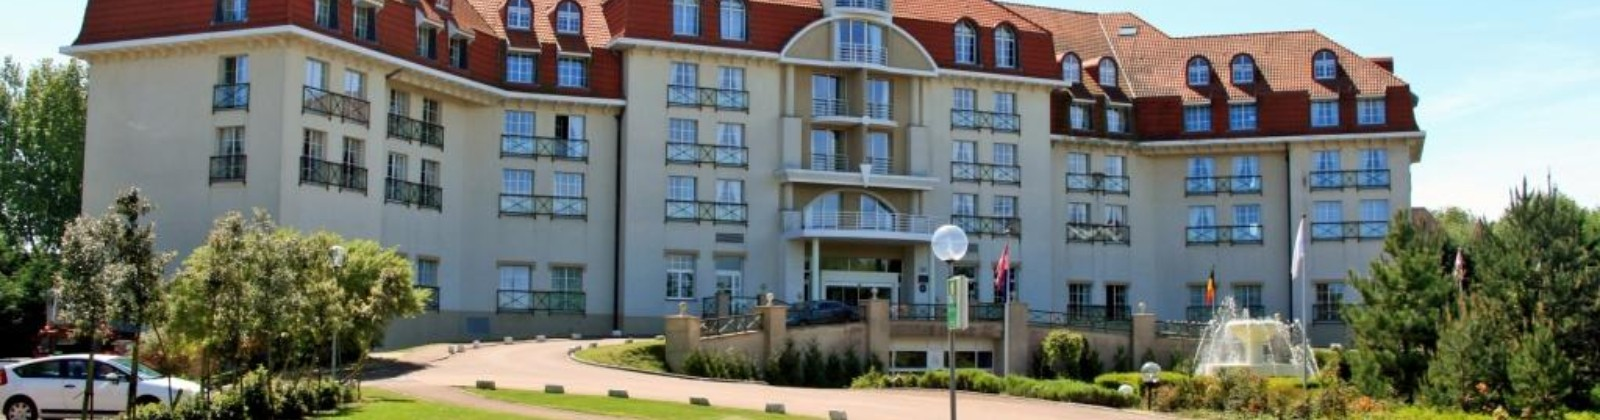 grand hotel touquet olevene event